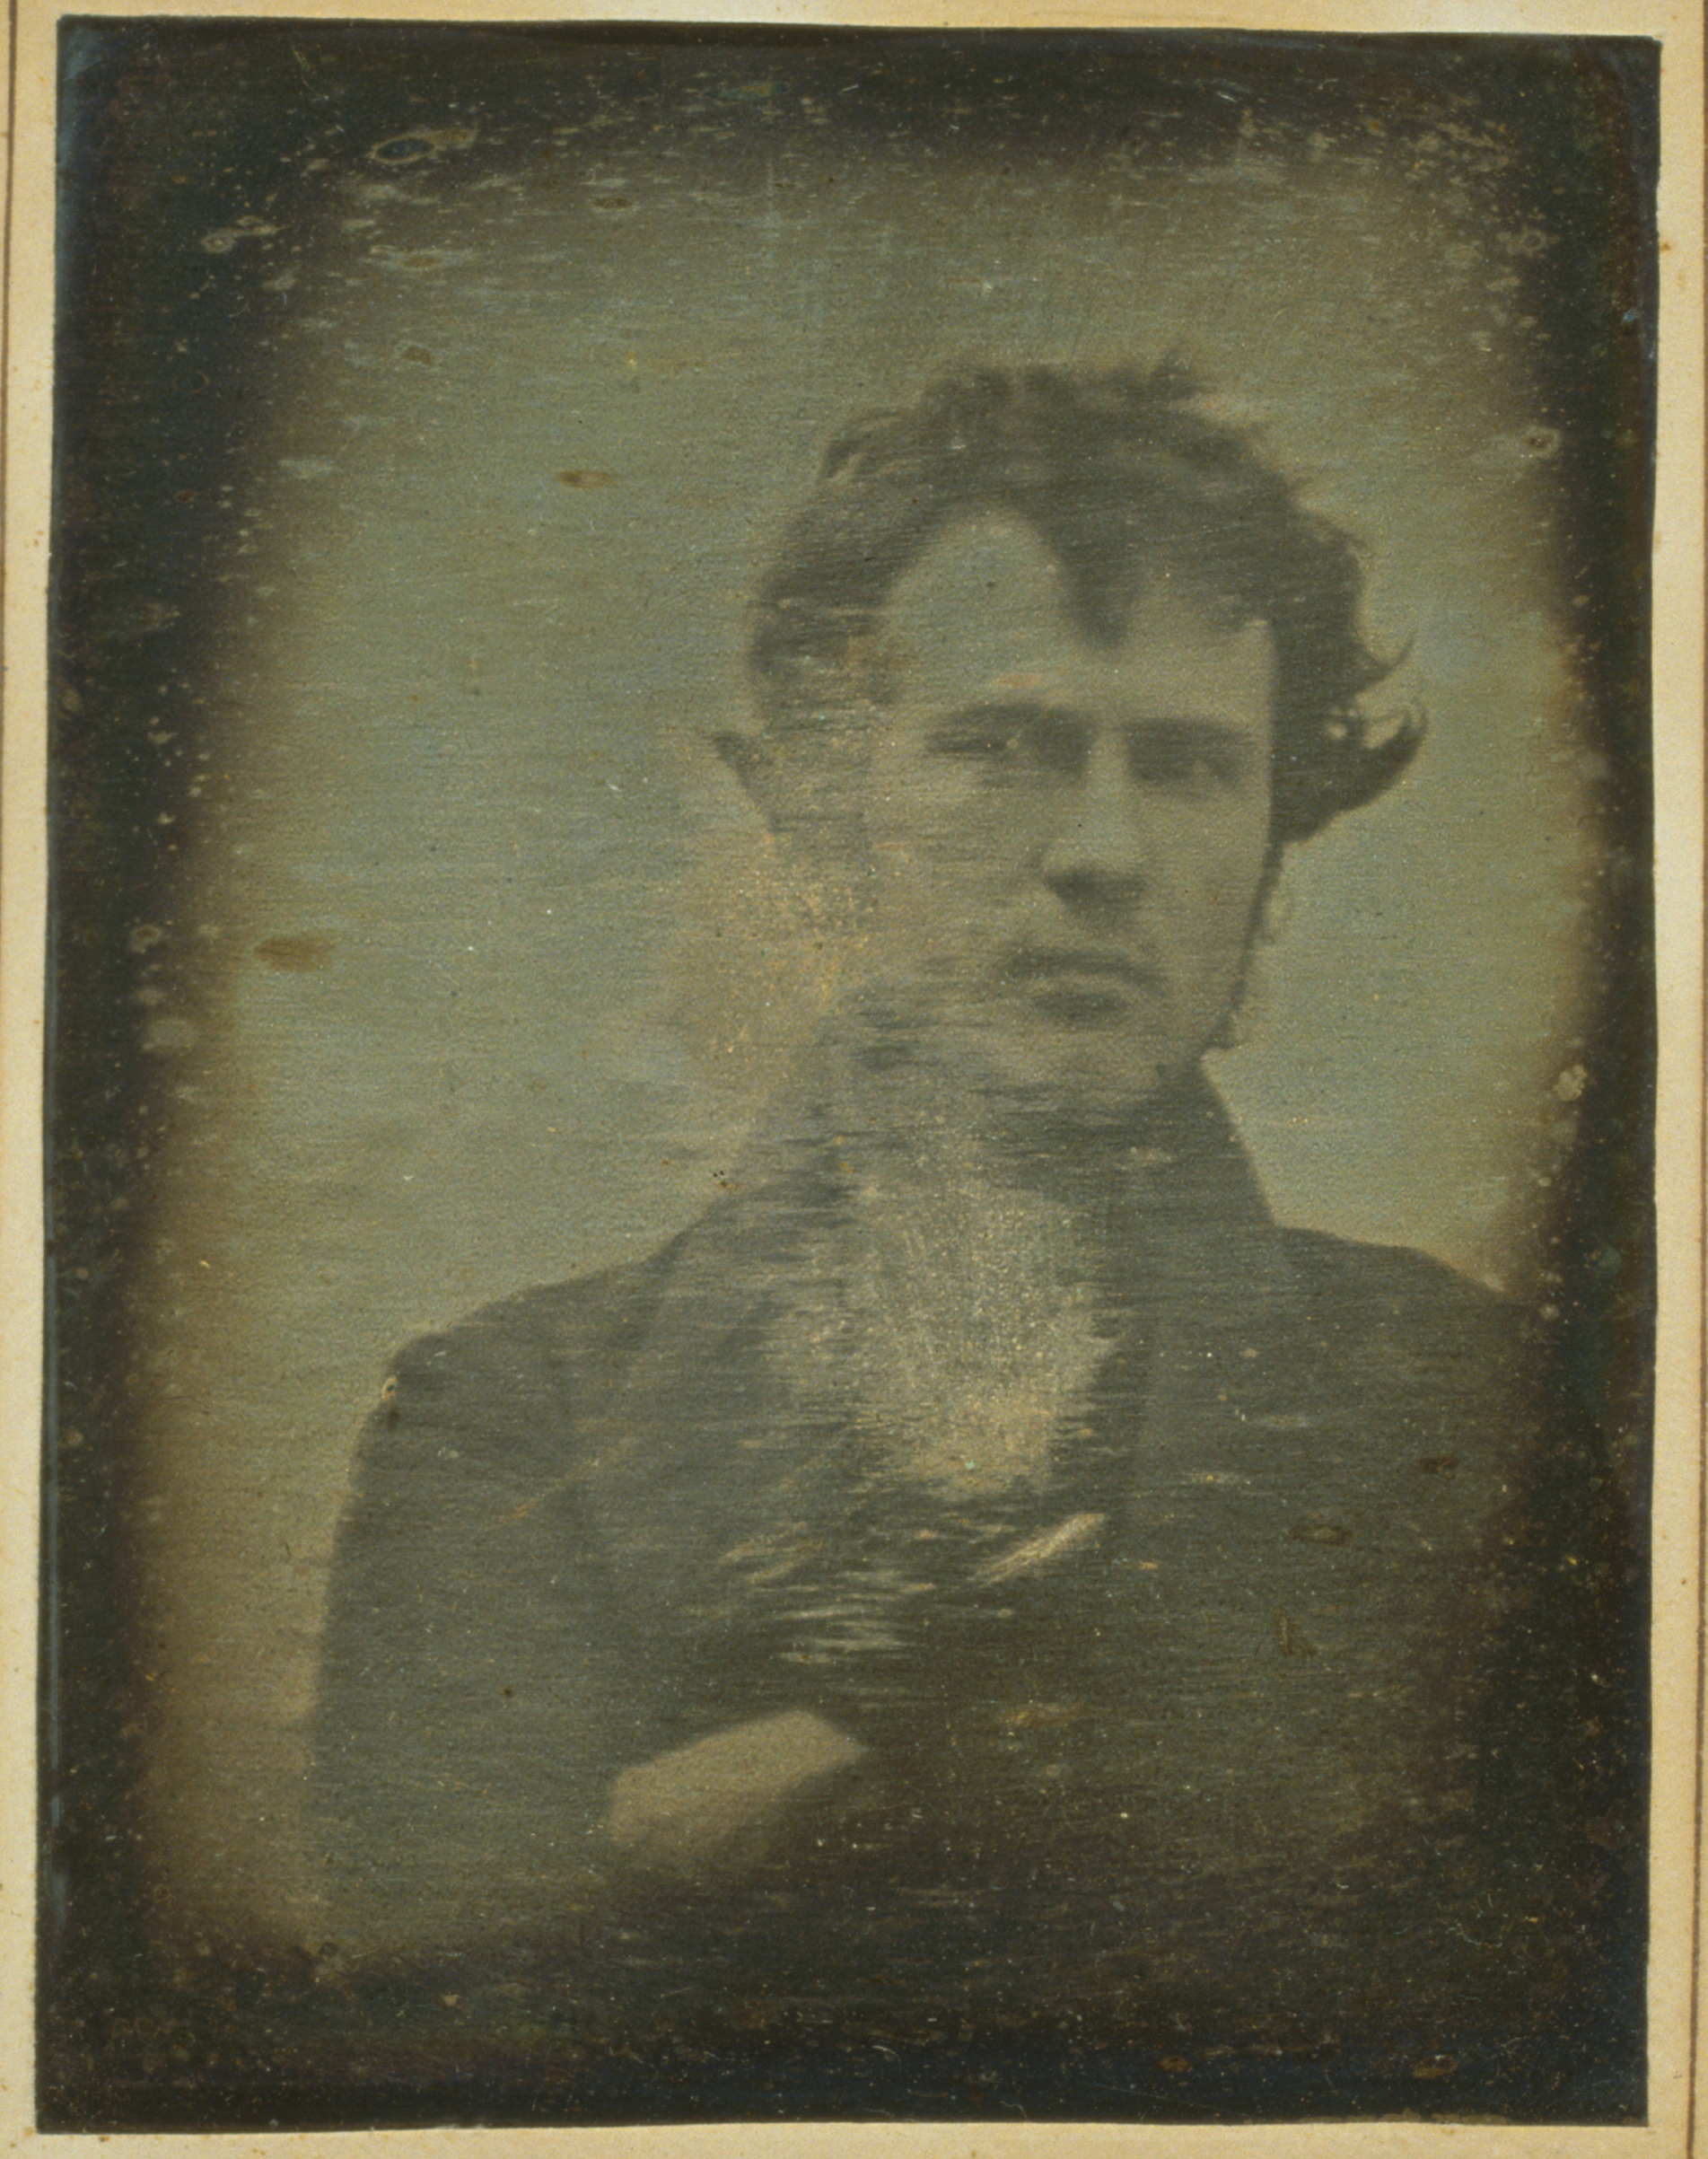 The first photographic selfie by Philadelphia photographer Robert Cornelius.